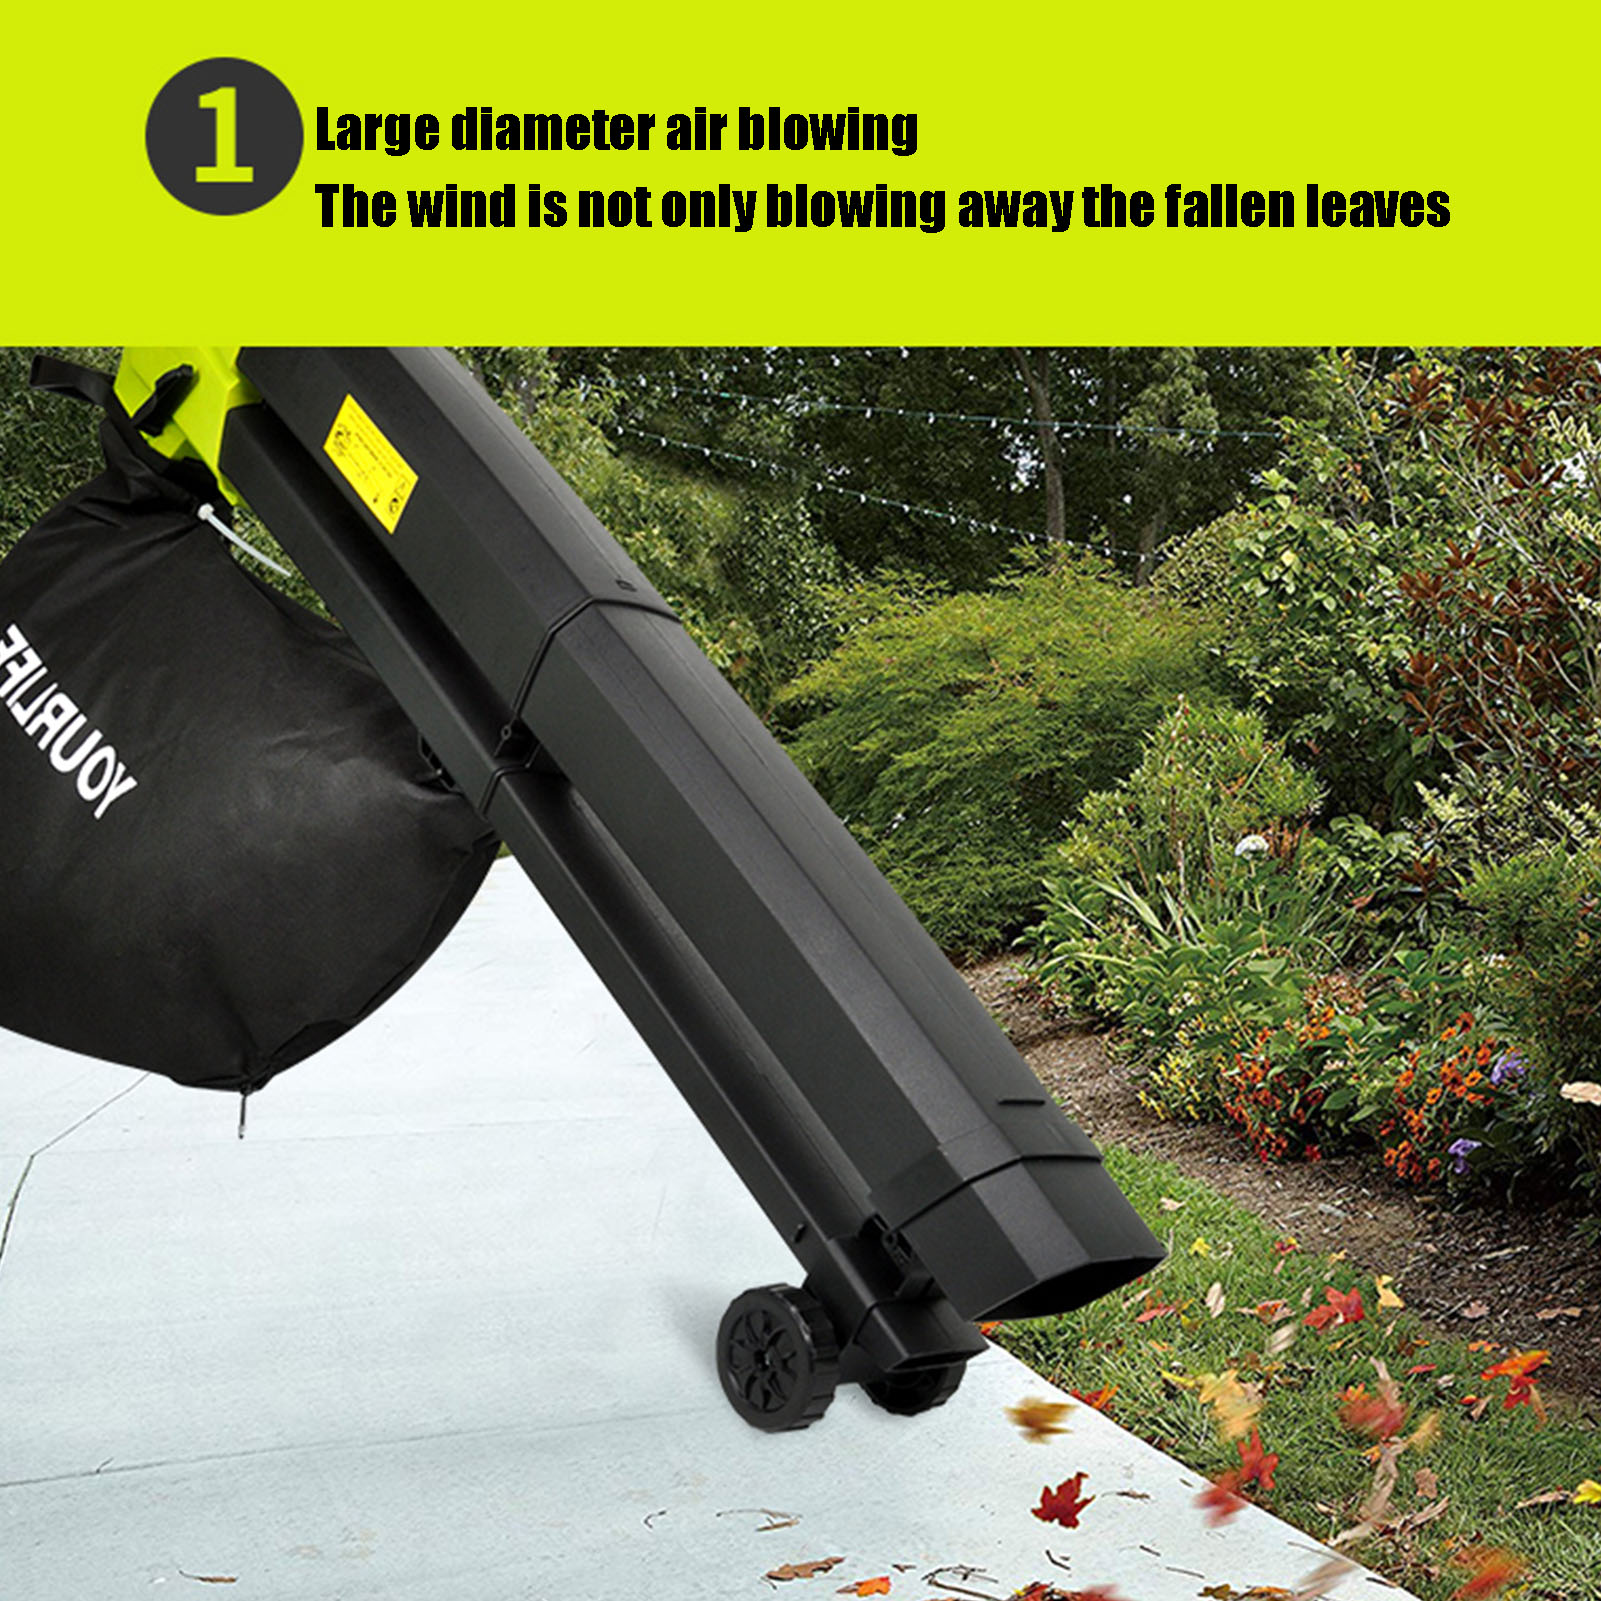 Tools : 3000W Leaf Vacuum 3 In 1 Multi-function Durable Electric Garden Leaf Blower With 45L Collection Bag Leaf Snow Mulcher 220-240V